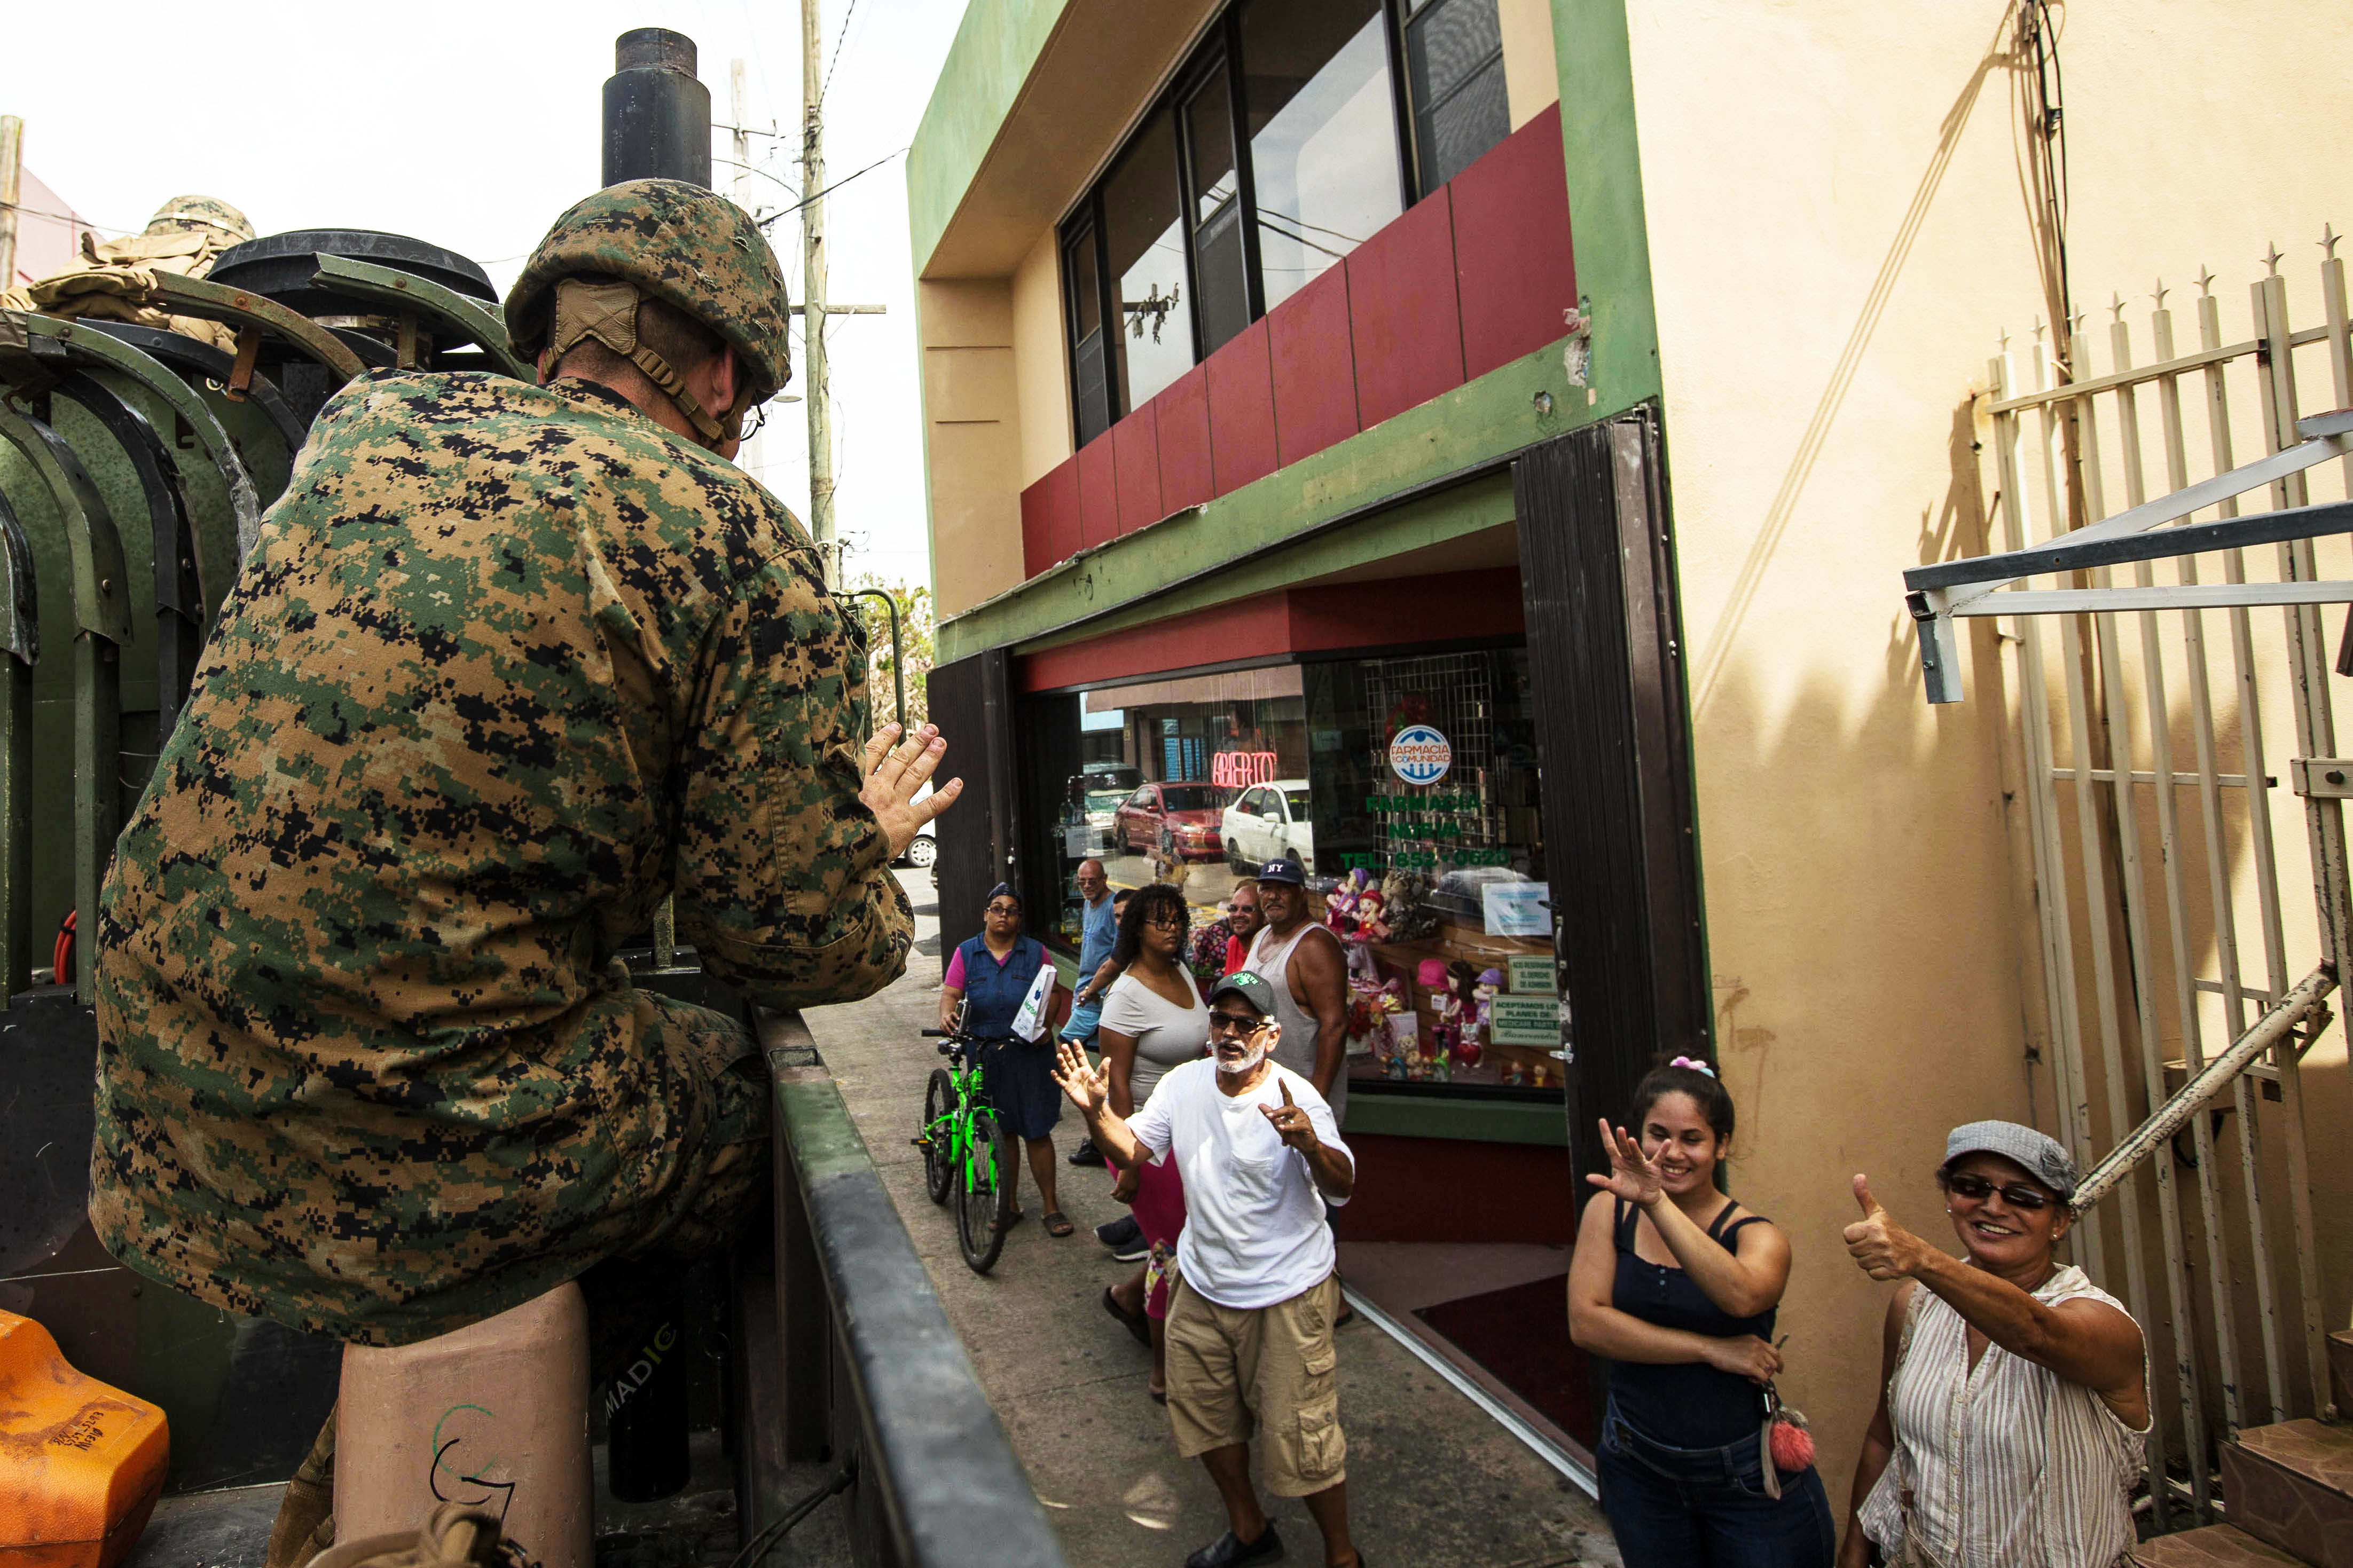 U.S. Marine Corps 1st Lt. Charles V. McCole, an officer with the Air Traffic Control Mobile Team, 26th Marine Expeditionary Unit (MEU), waves to local residents during departure from Humacao Hospital after conducting a medical and operational needs assessment as part of Hurricane Maria relief efforts at Humacao, Puerto Rico, Sept. 27, 2017. (U.S. Marine Corps photo)